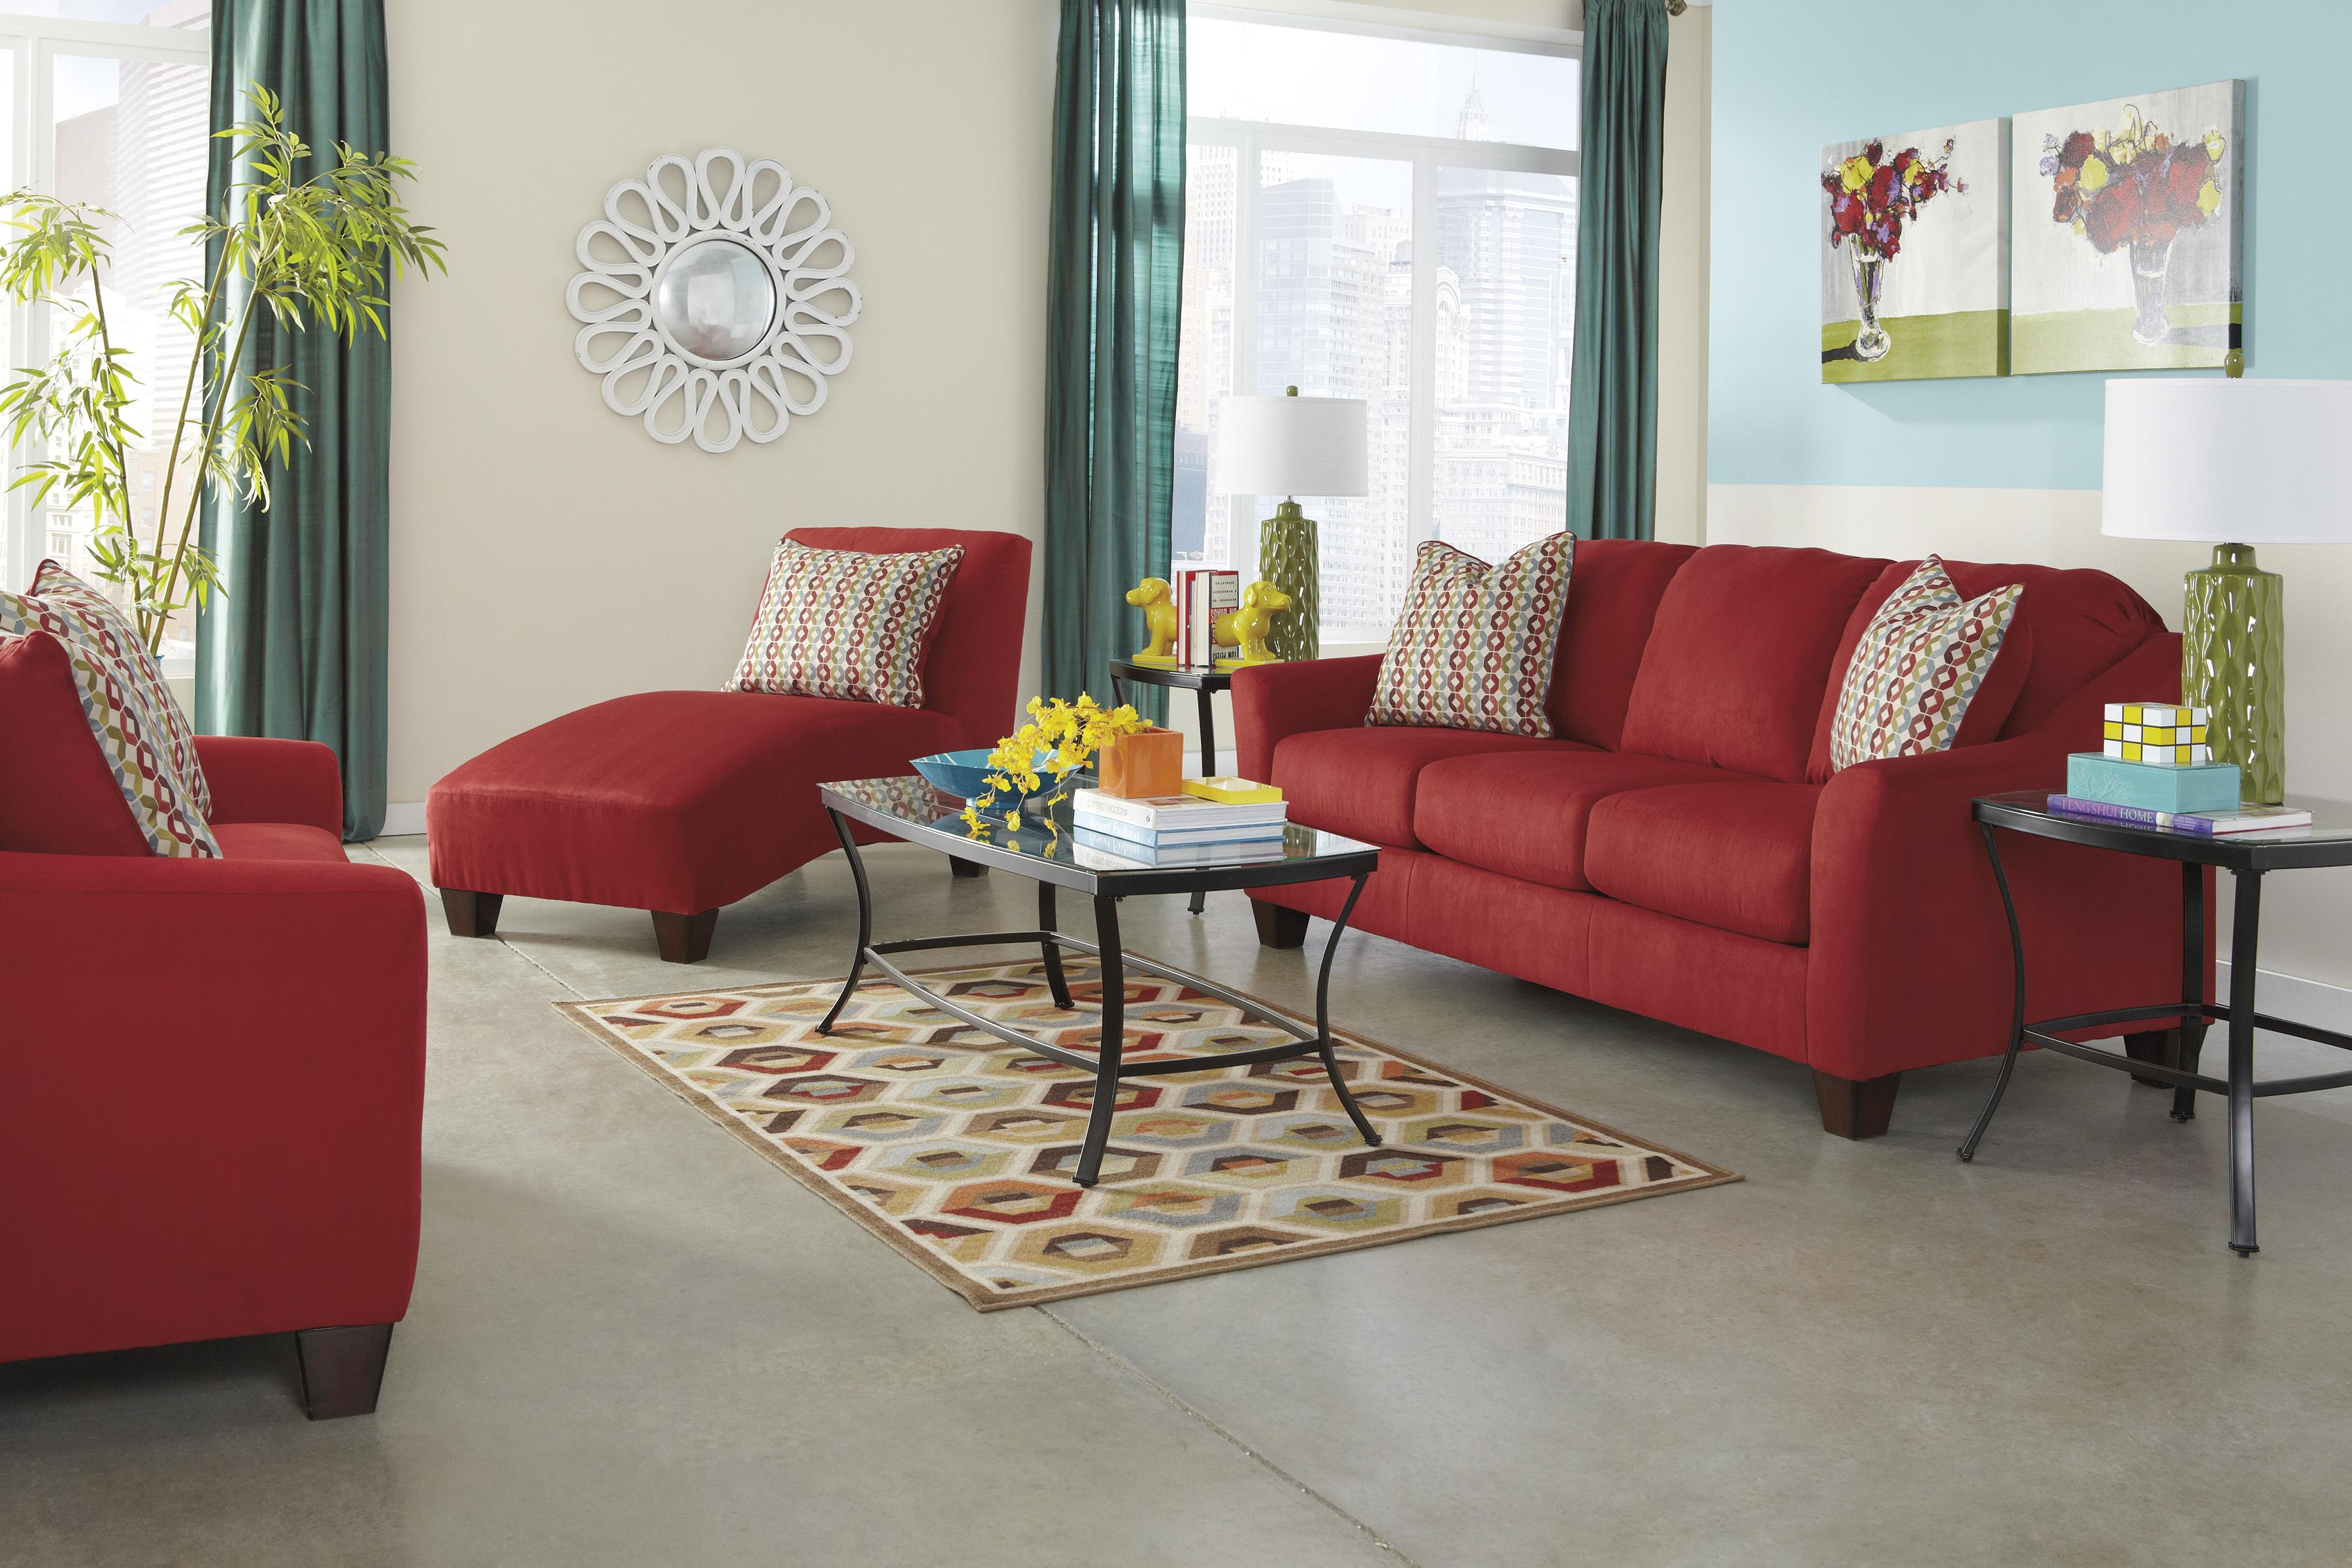 Signature Design by Ashley Hannin - Spice Stationary Living Room Group - Item Number: 95801 Living Room Group 6